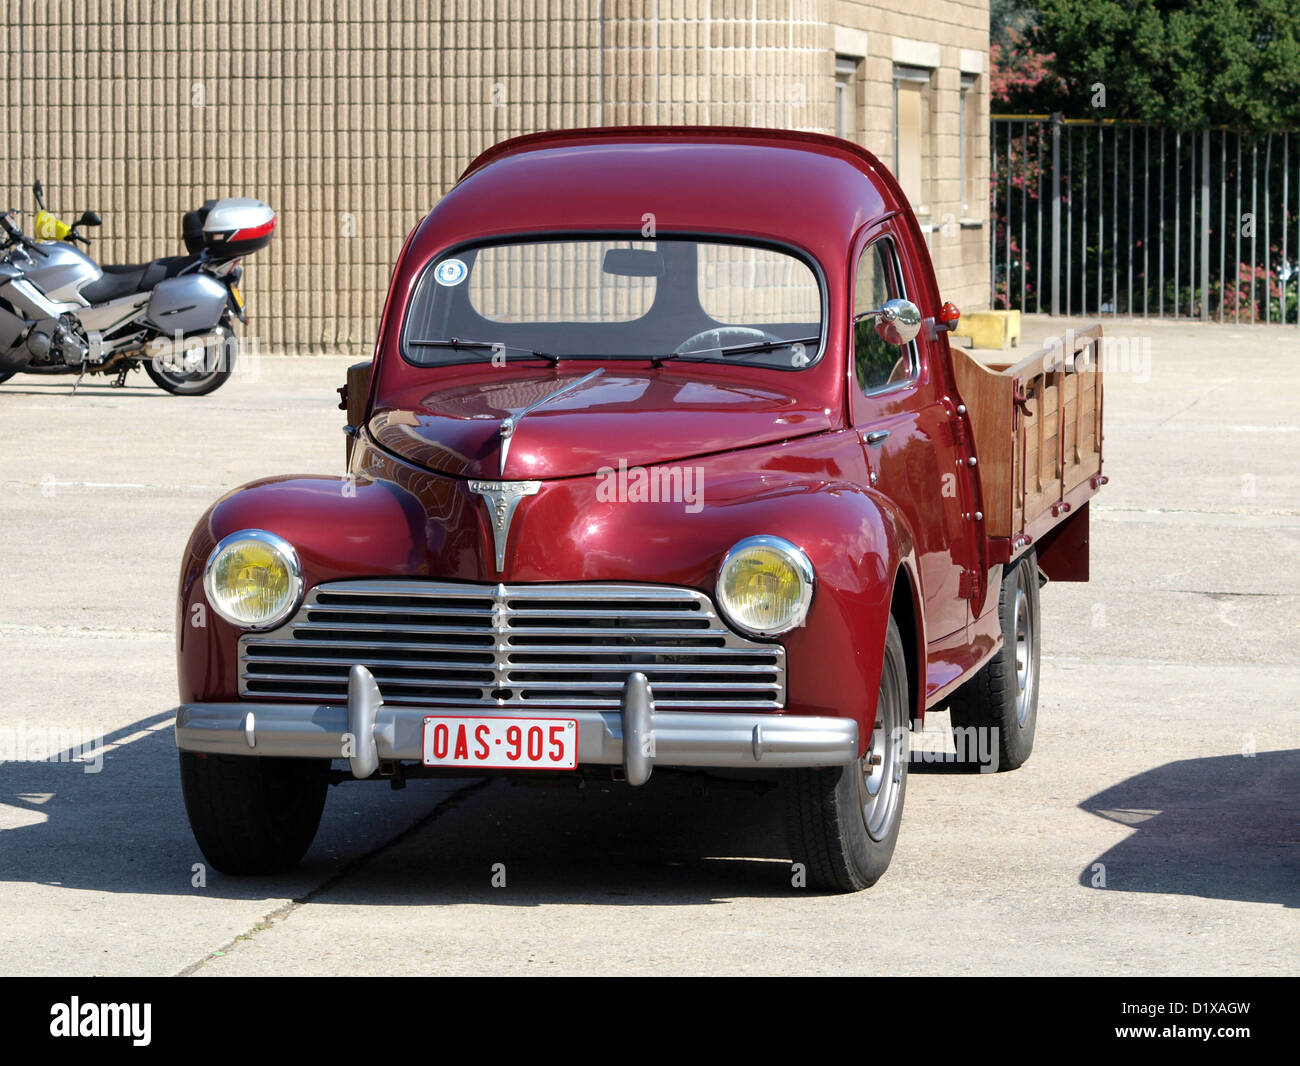 Page 2 Peugeot 203 High Resolution Stock Photography And Images Alamy